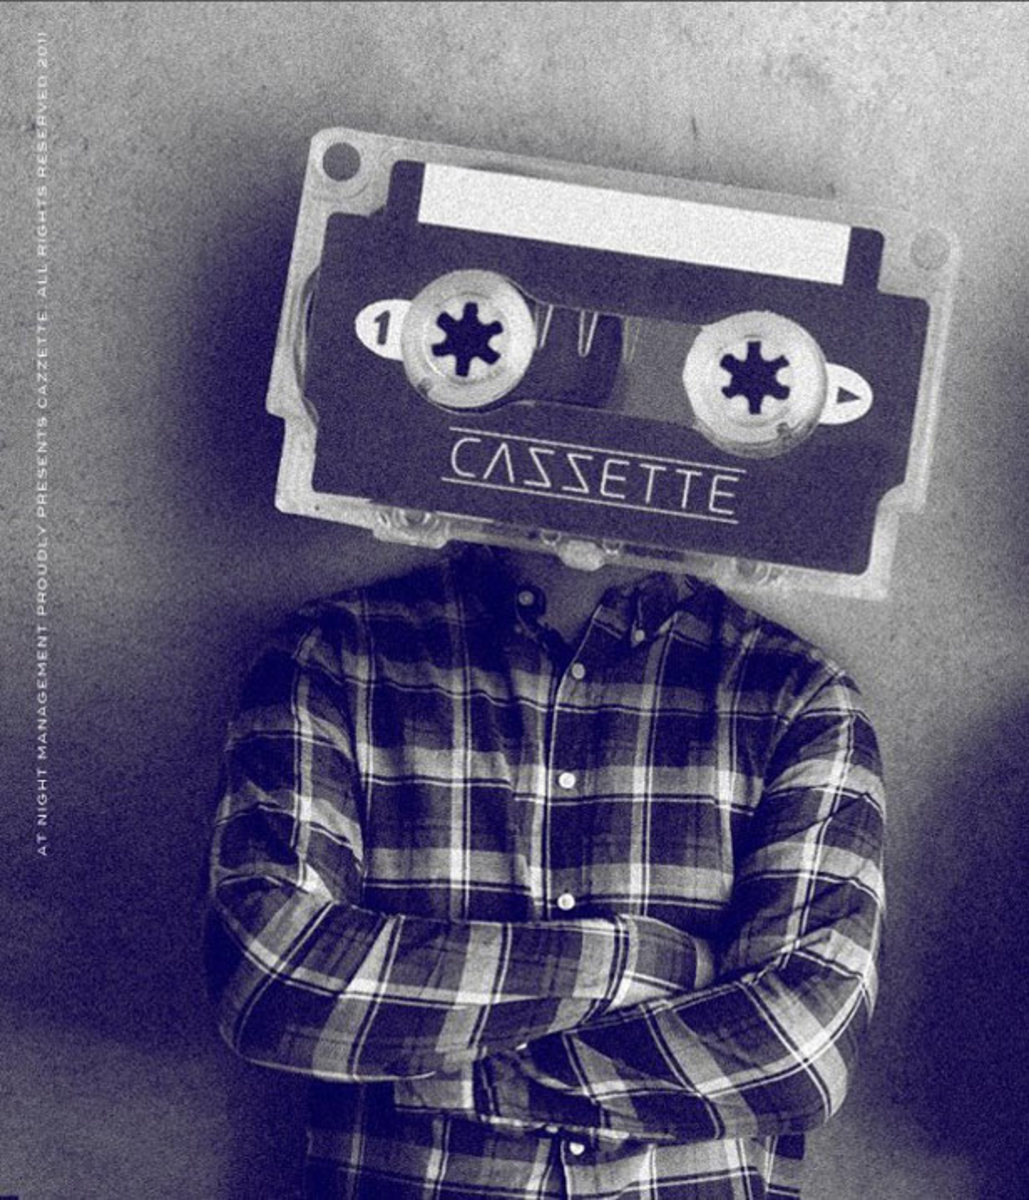 Contest: Calling All Budding Designers, Swedish Duo Cazzette Want You To Design Their Album Cover